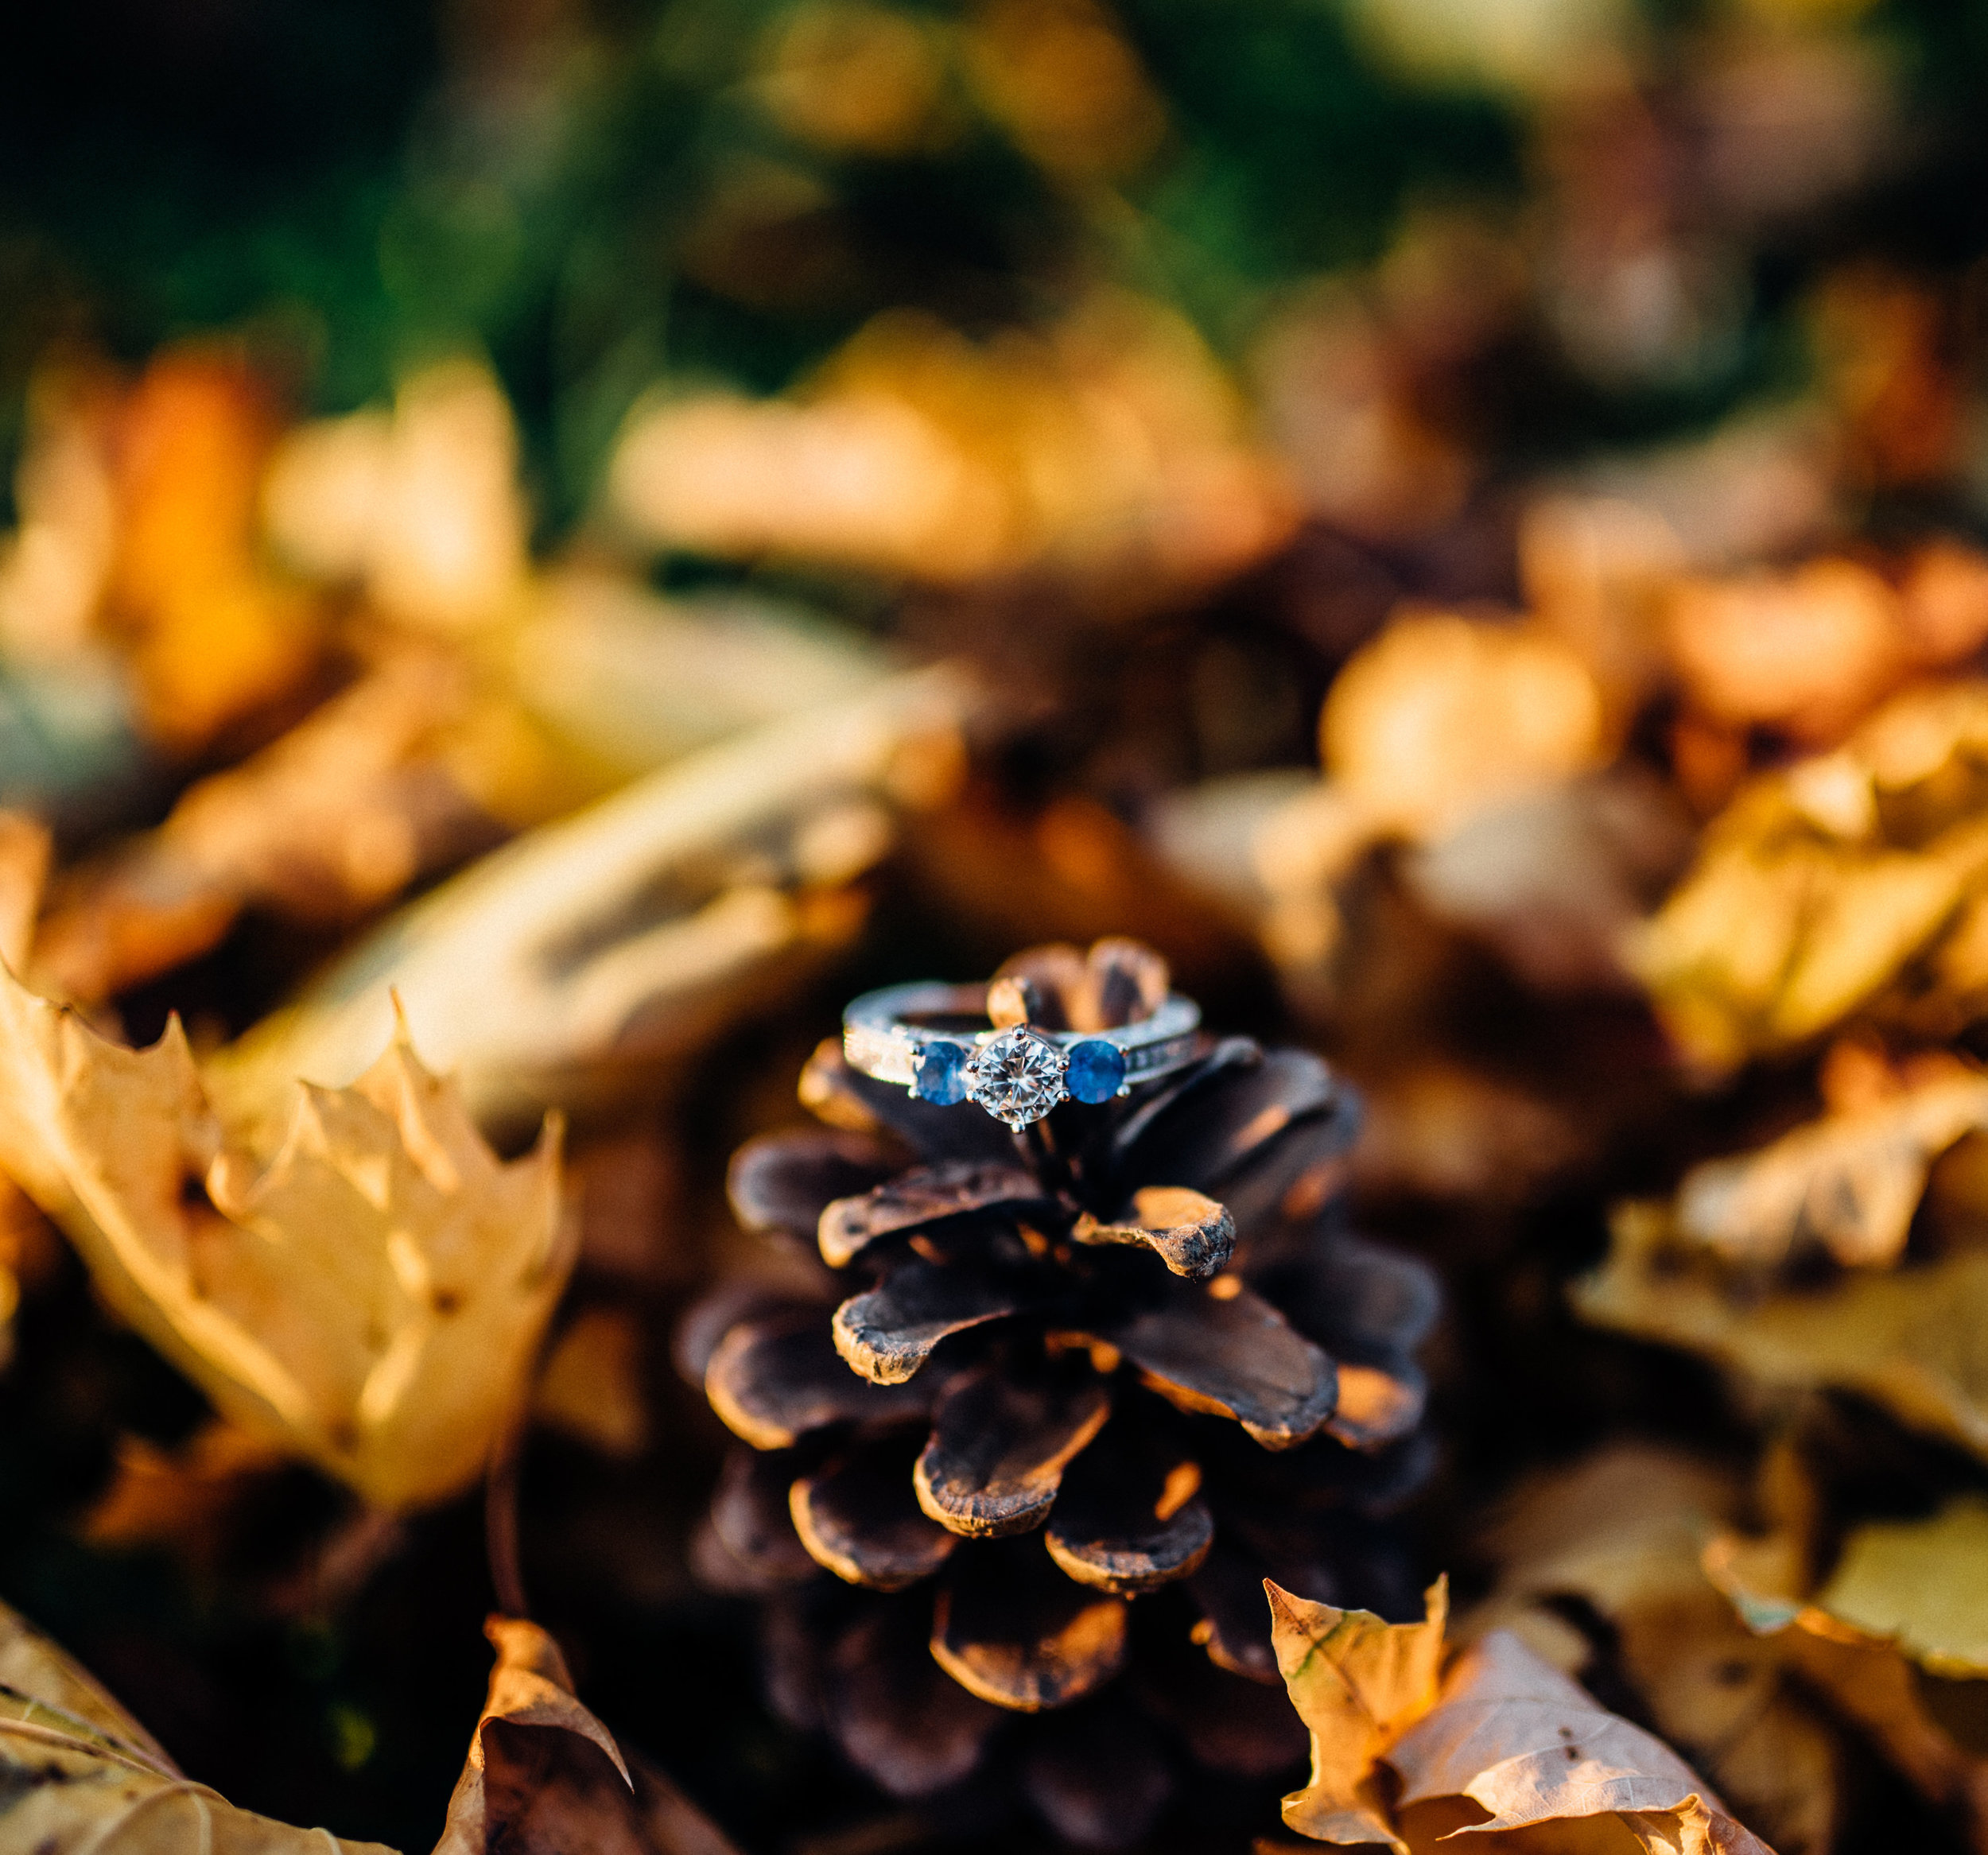 Pam_and_Mike_engagment_fall_2015-48.jpg